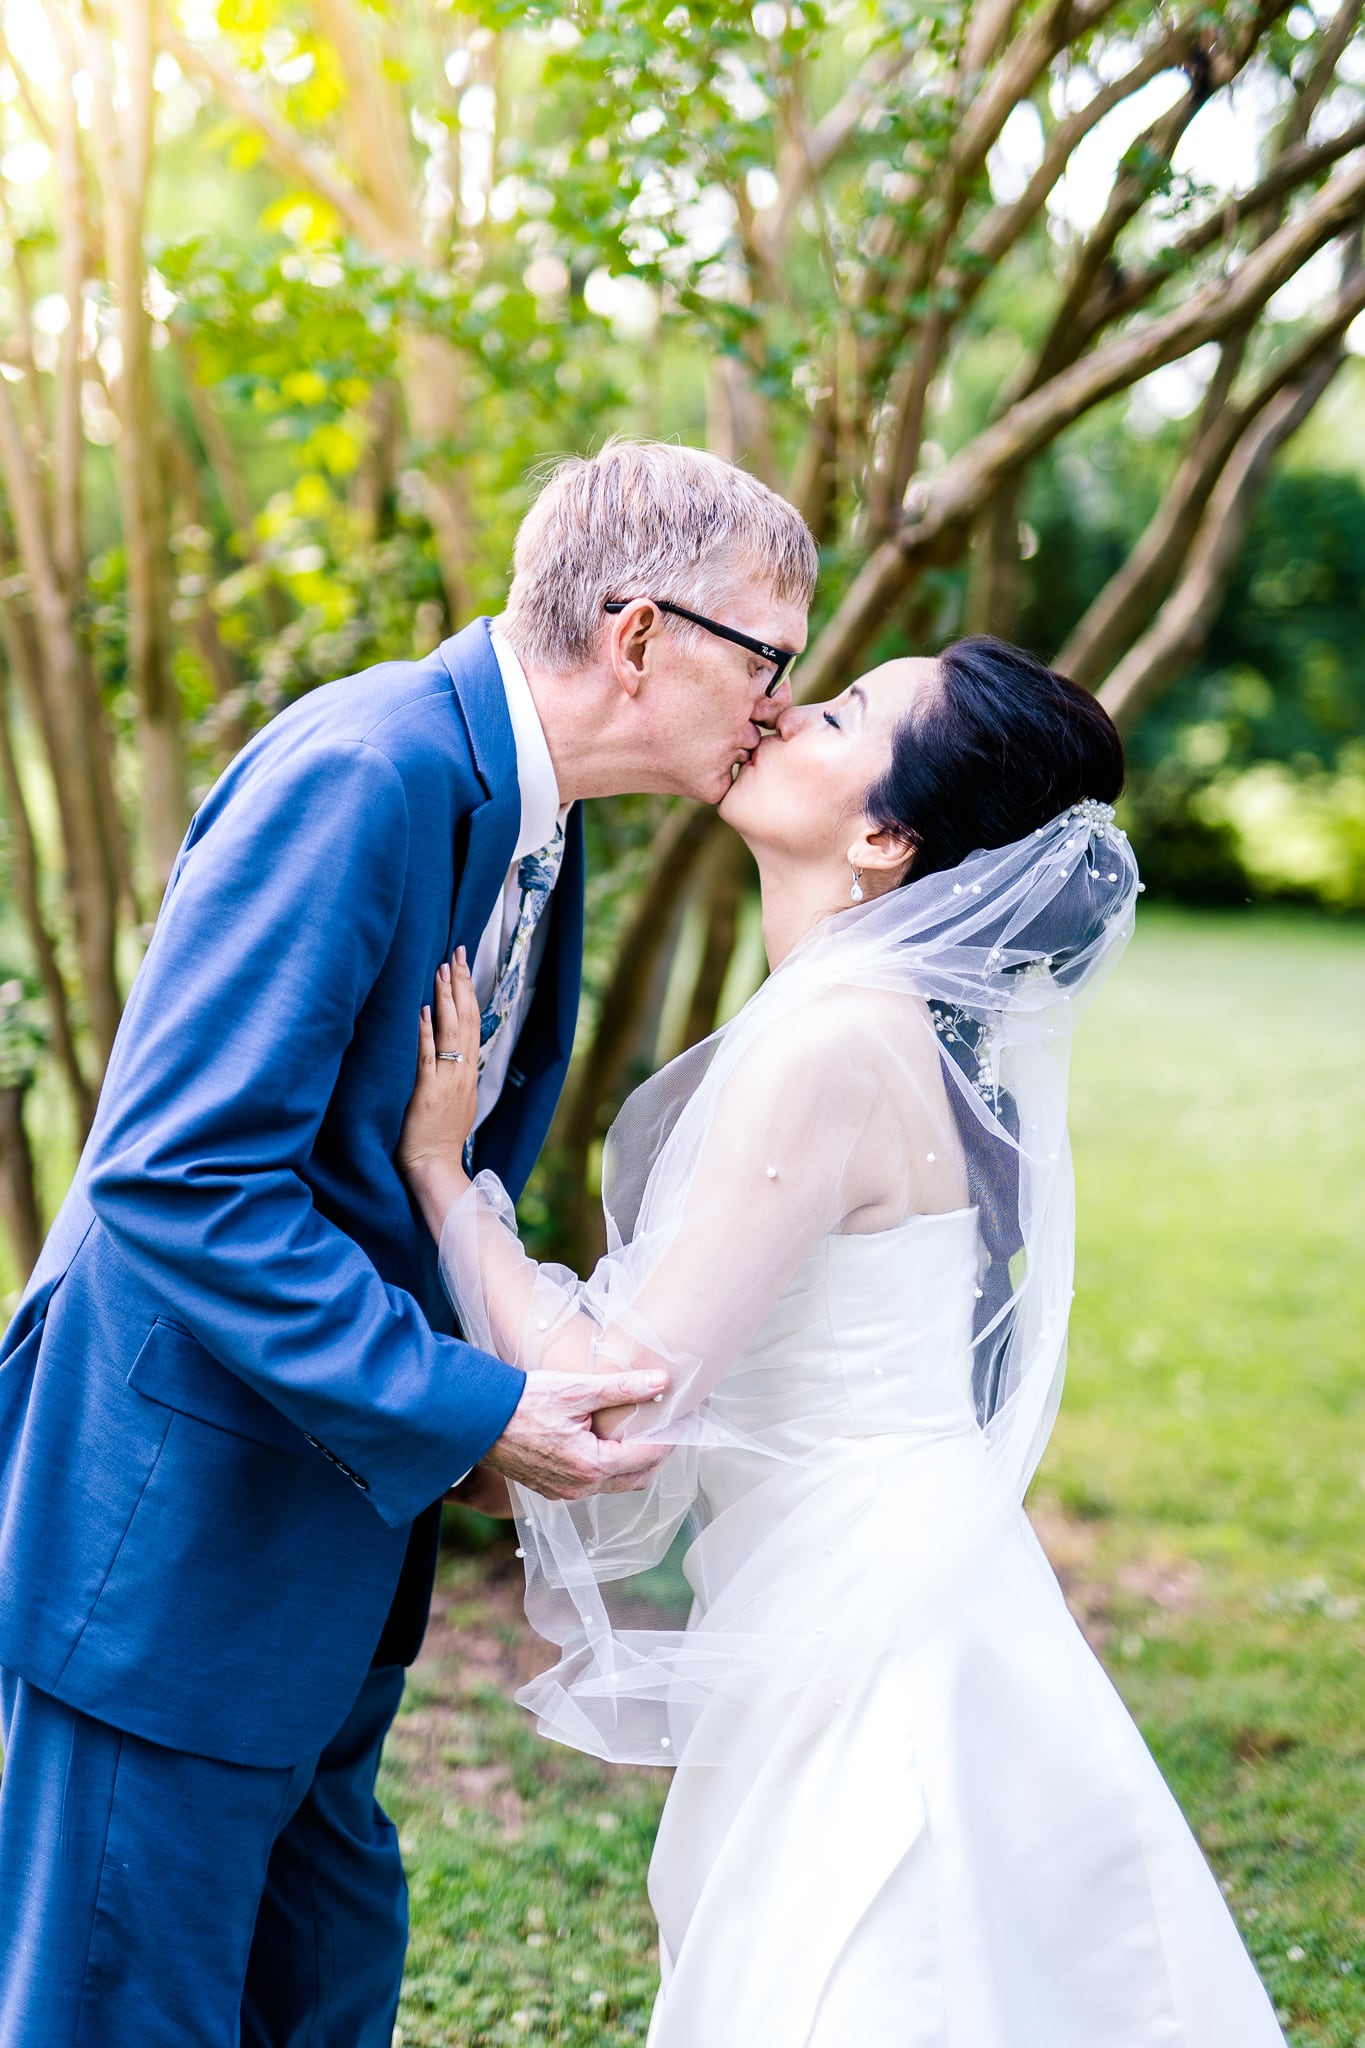 A Taiwanese bride kisses her groom among the greenery at Hunter House at Nottoway Park after their wedding in Vienna, Northern Virginia